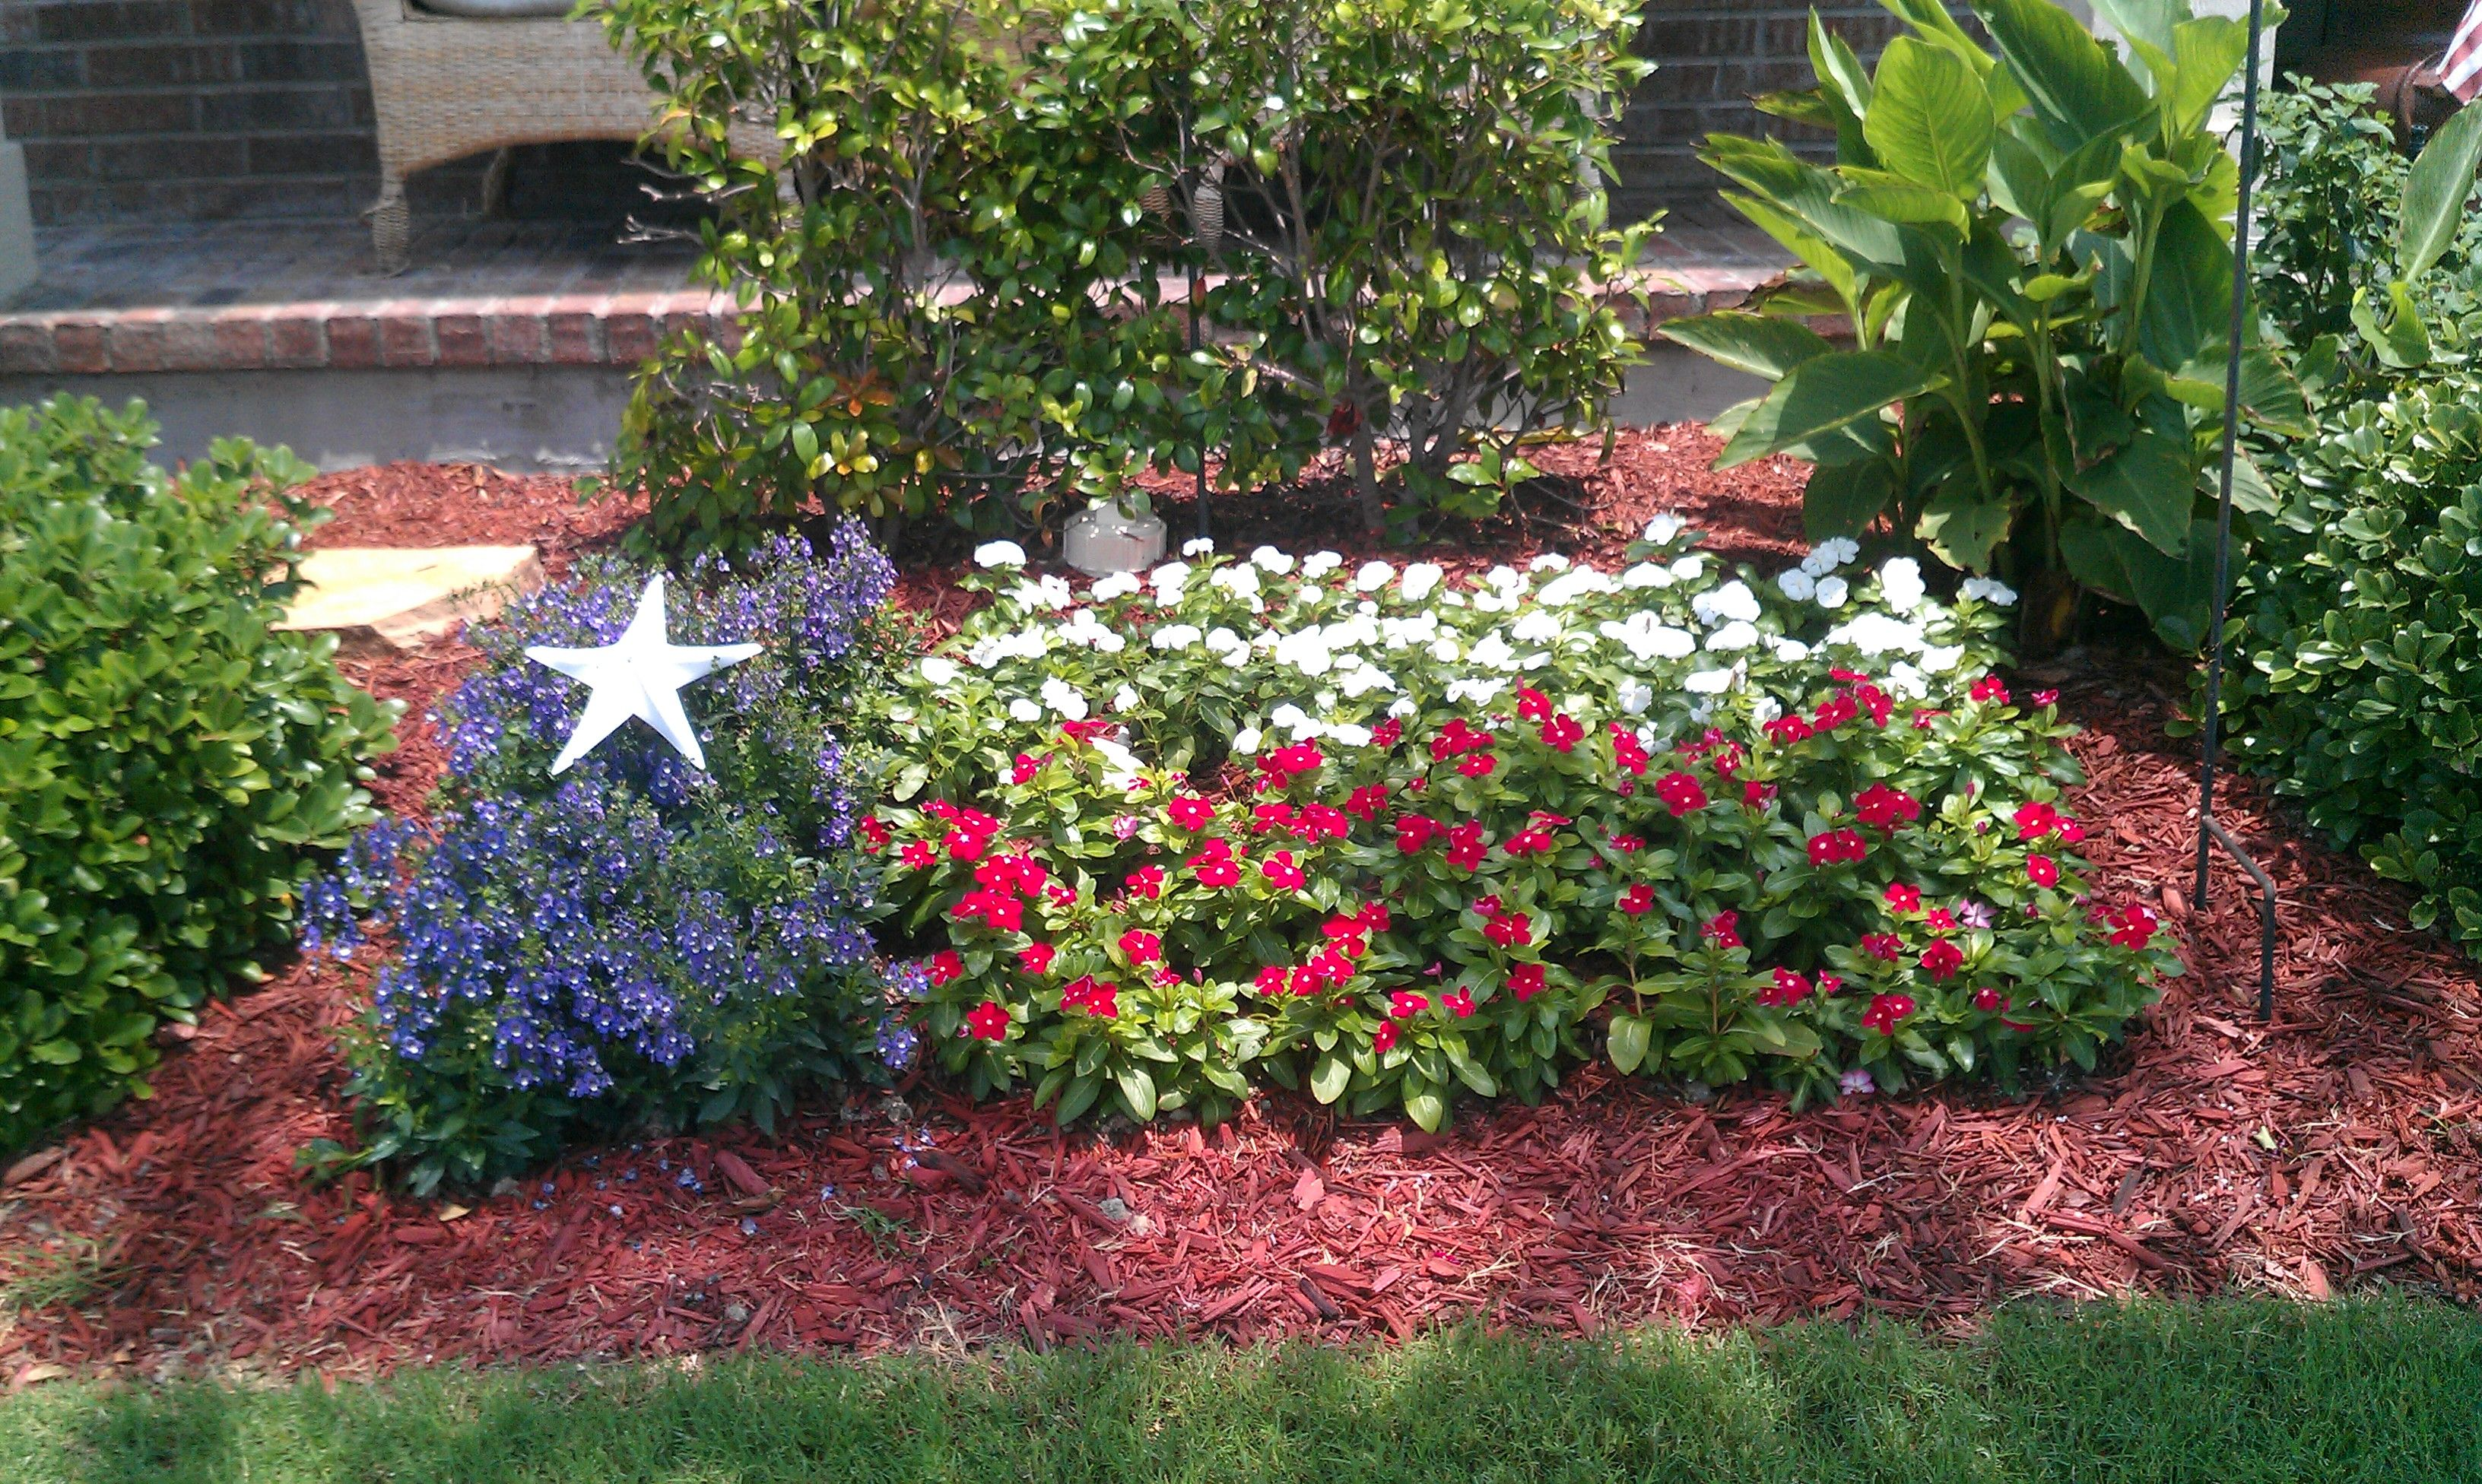 Awesome Texas Flag Garden :) Would Love To Do This